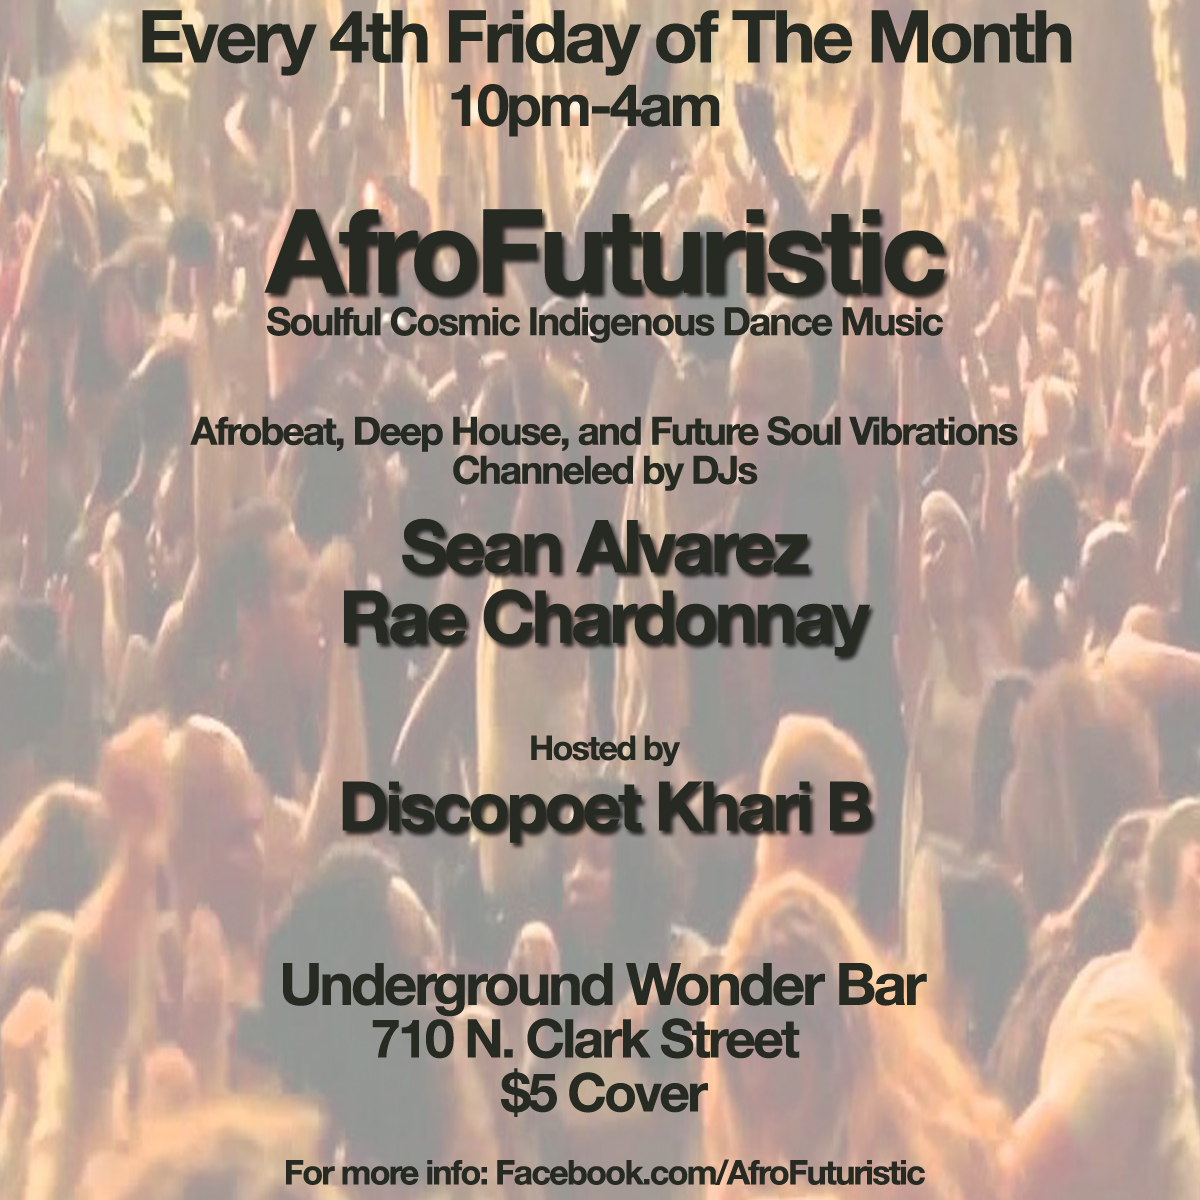 AfroFuturistic: Every 4th Friday